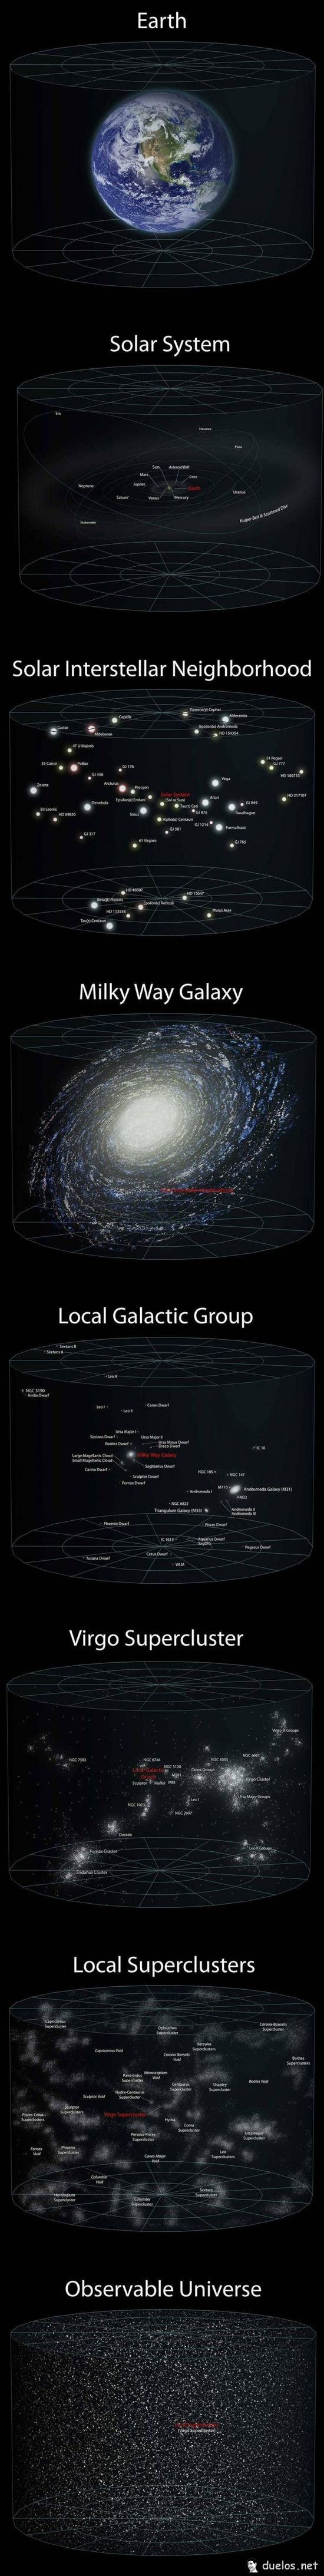 The vastness of our universe and perspective